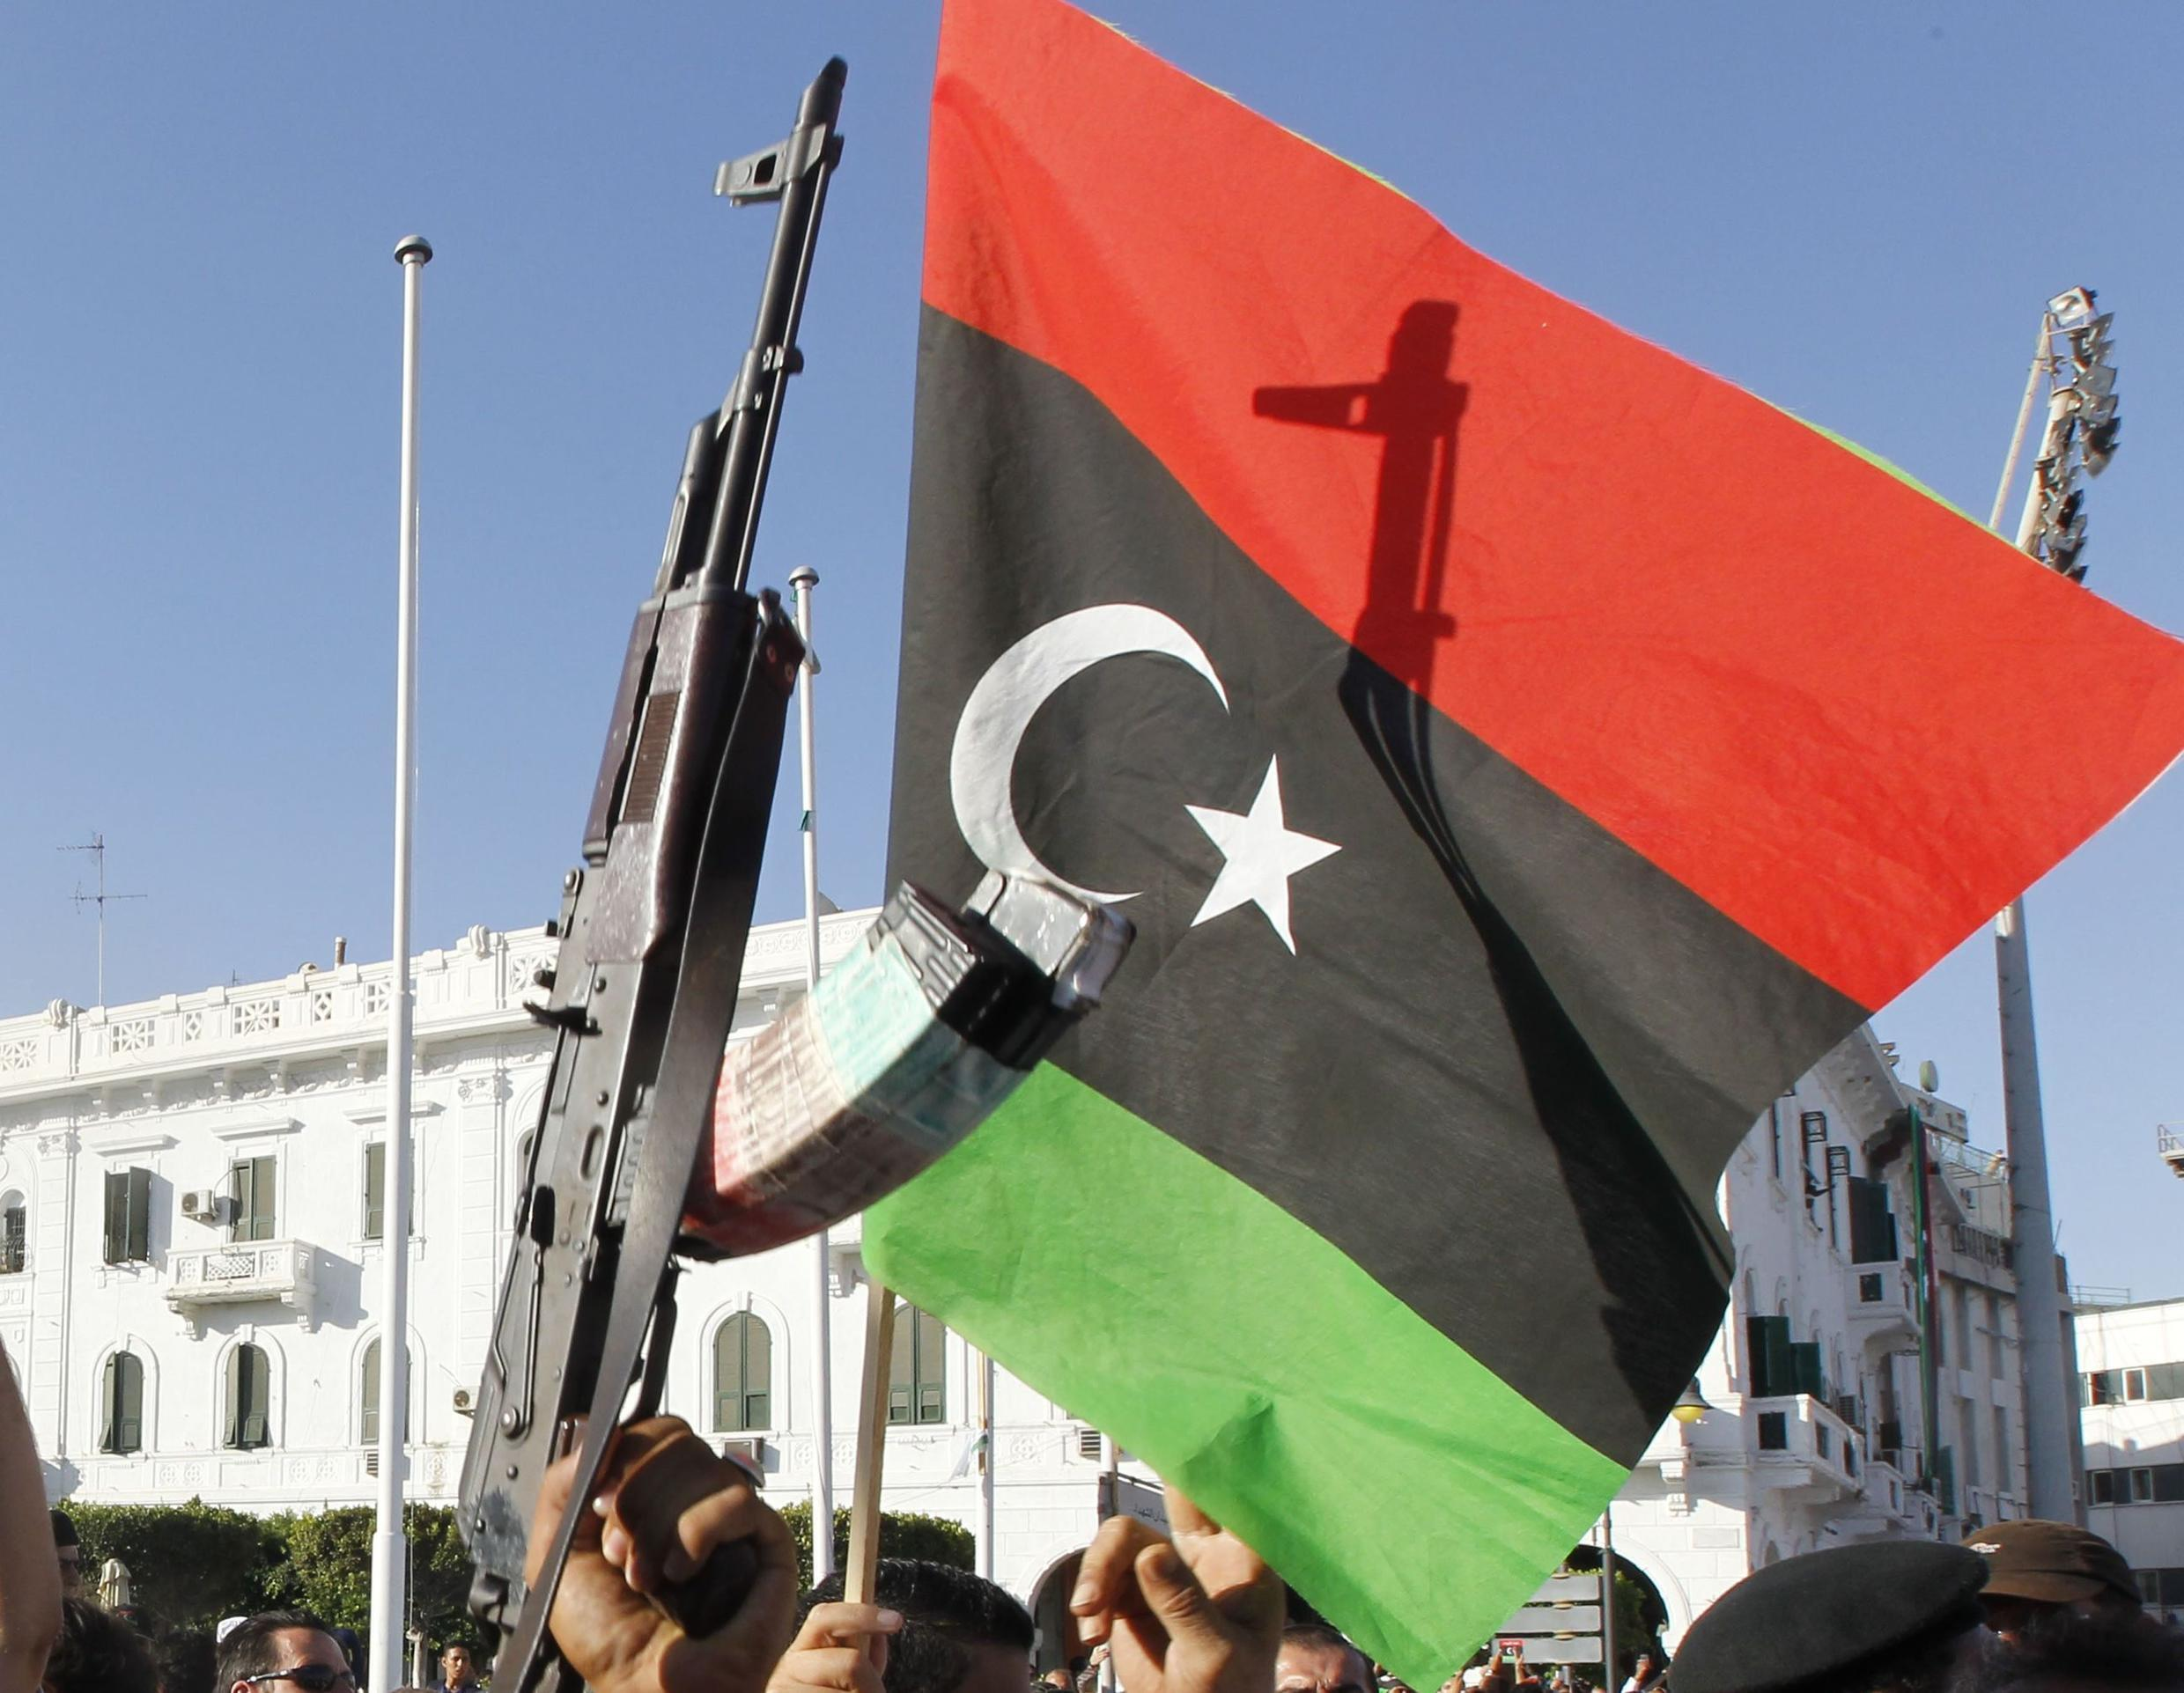 Libya's National Transitional Council needs money as well as recognition